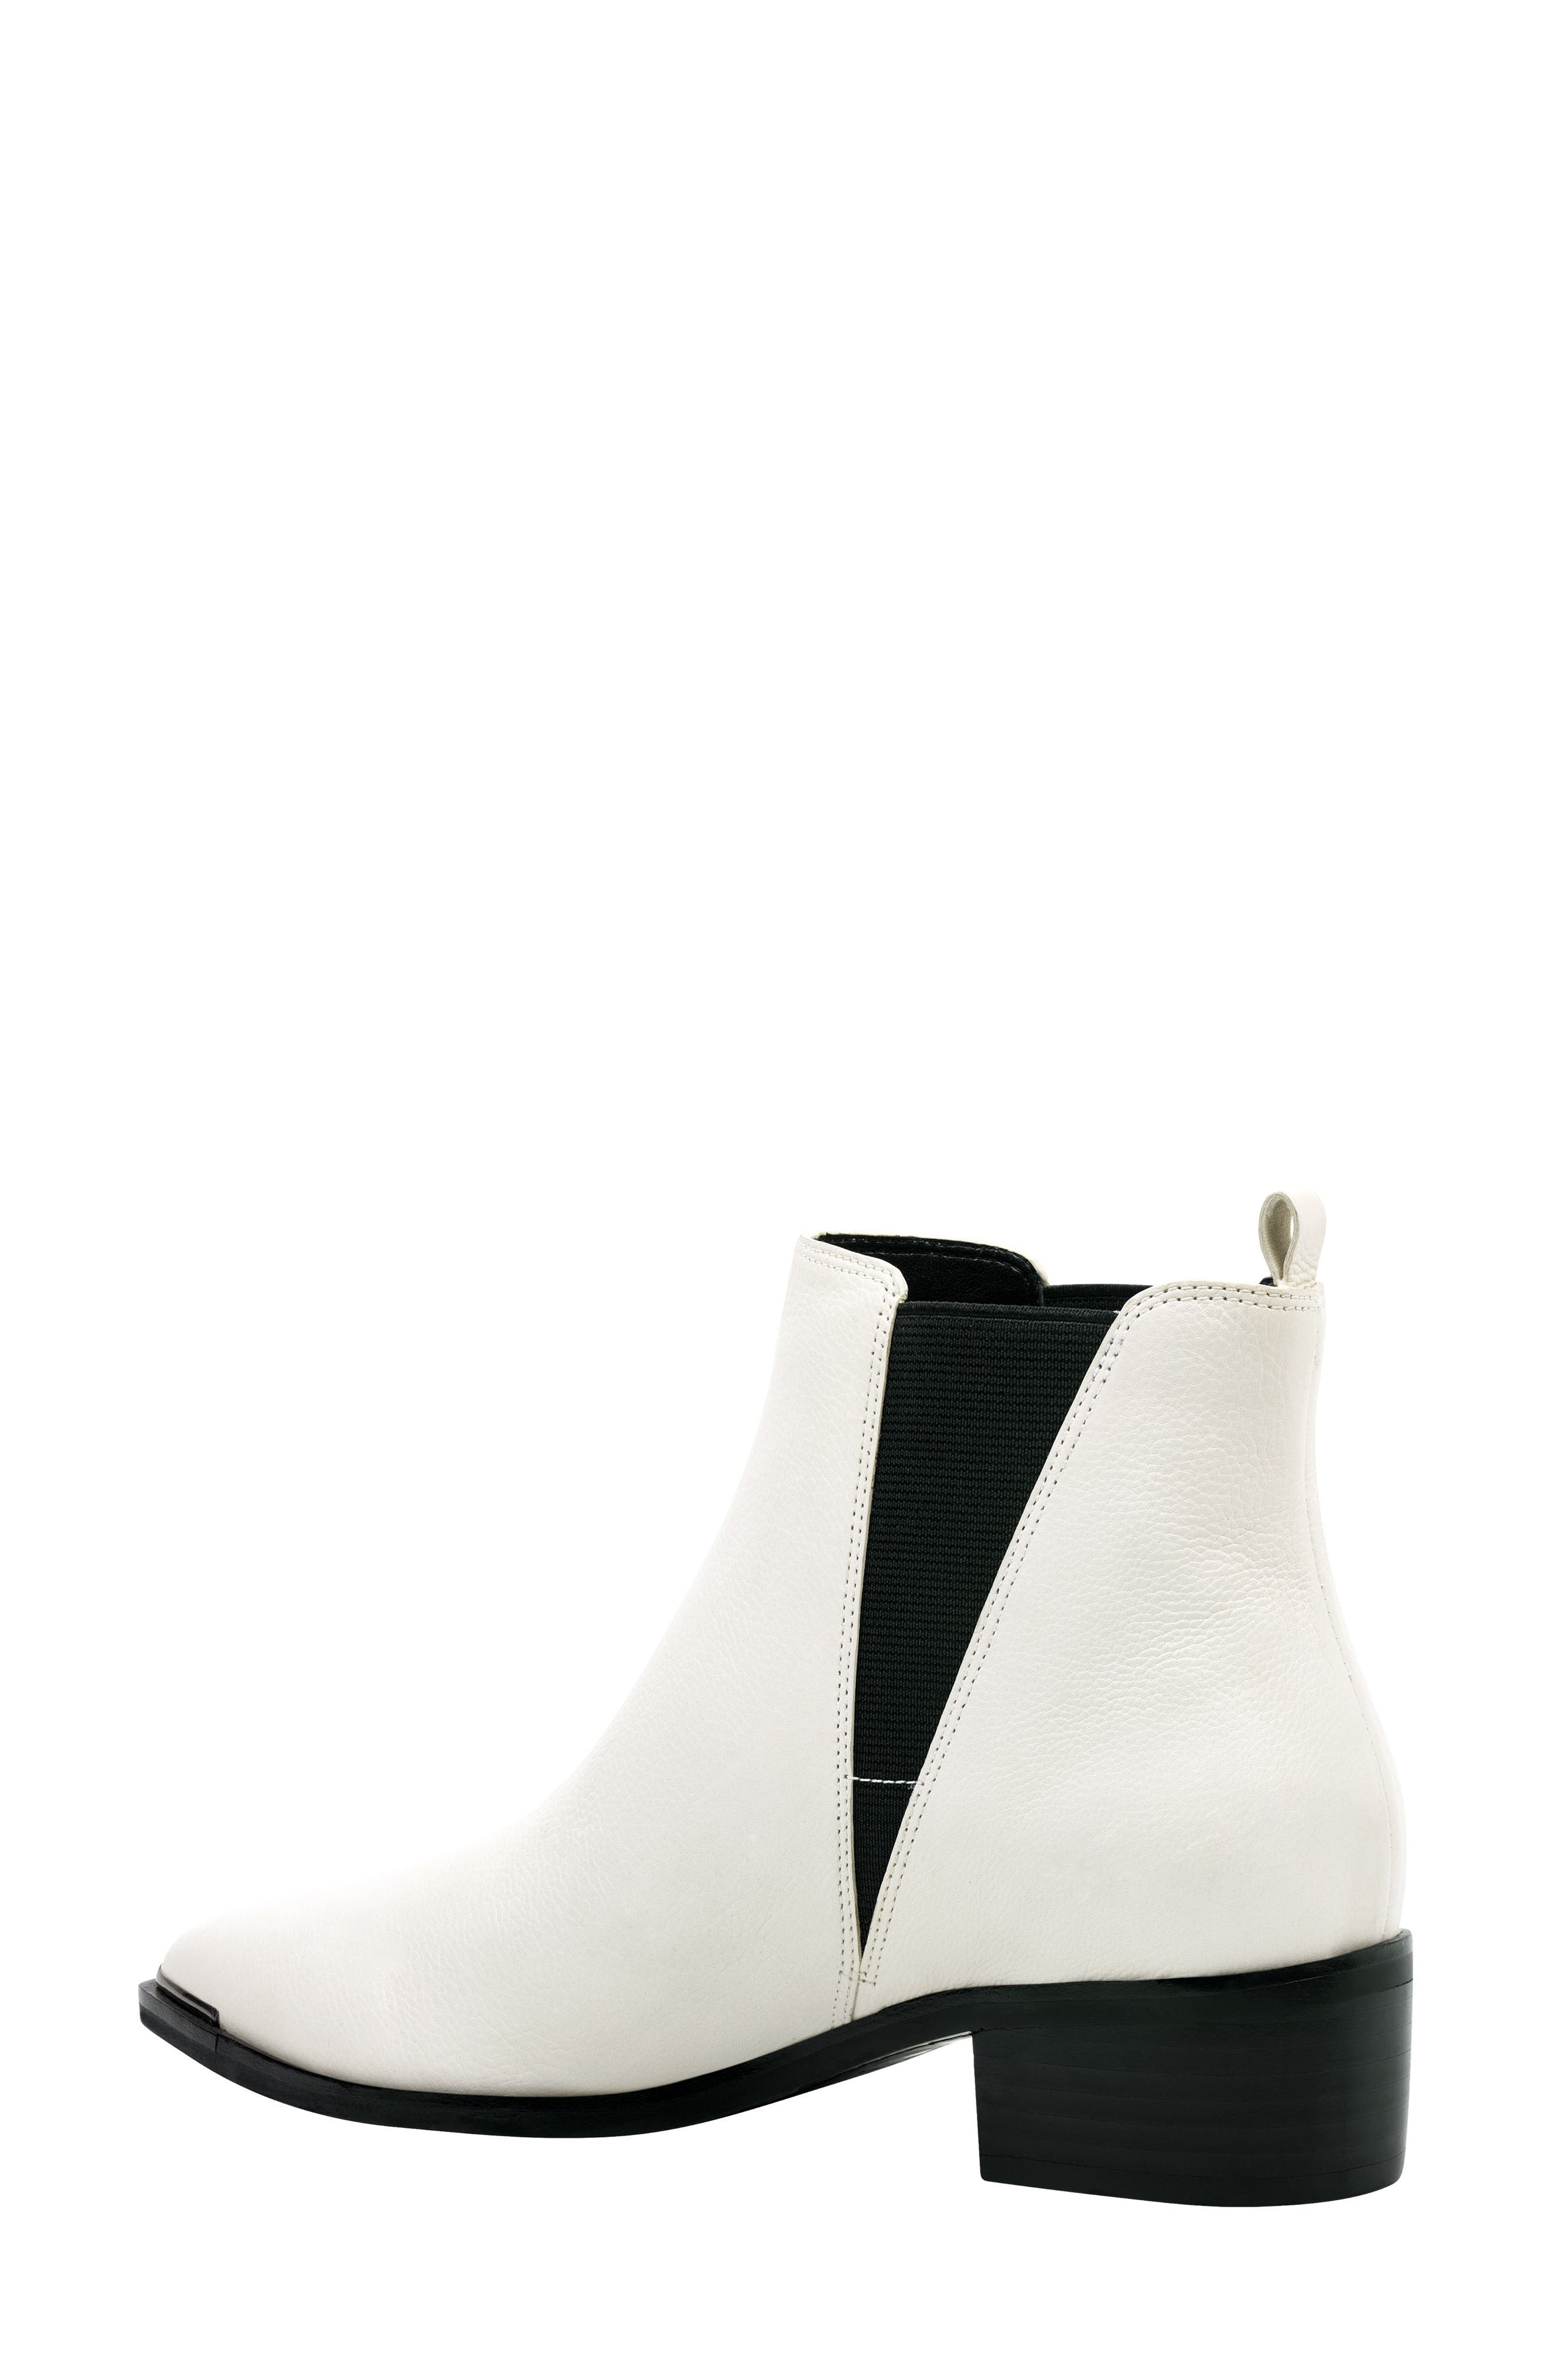 'Yale' Chelsea Boot,                             Alternate thumbnail 2, color,                             Ivory Leather